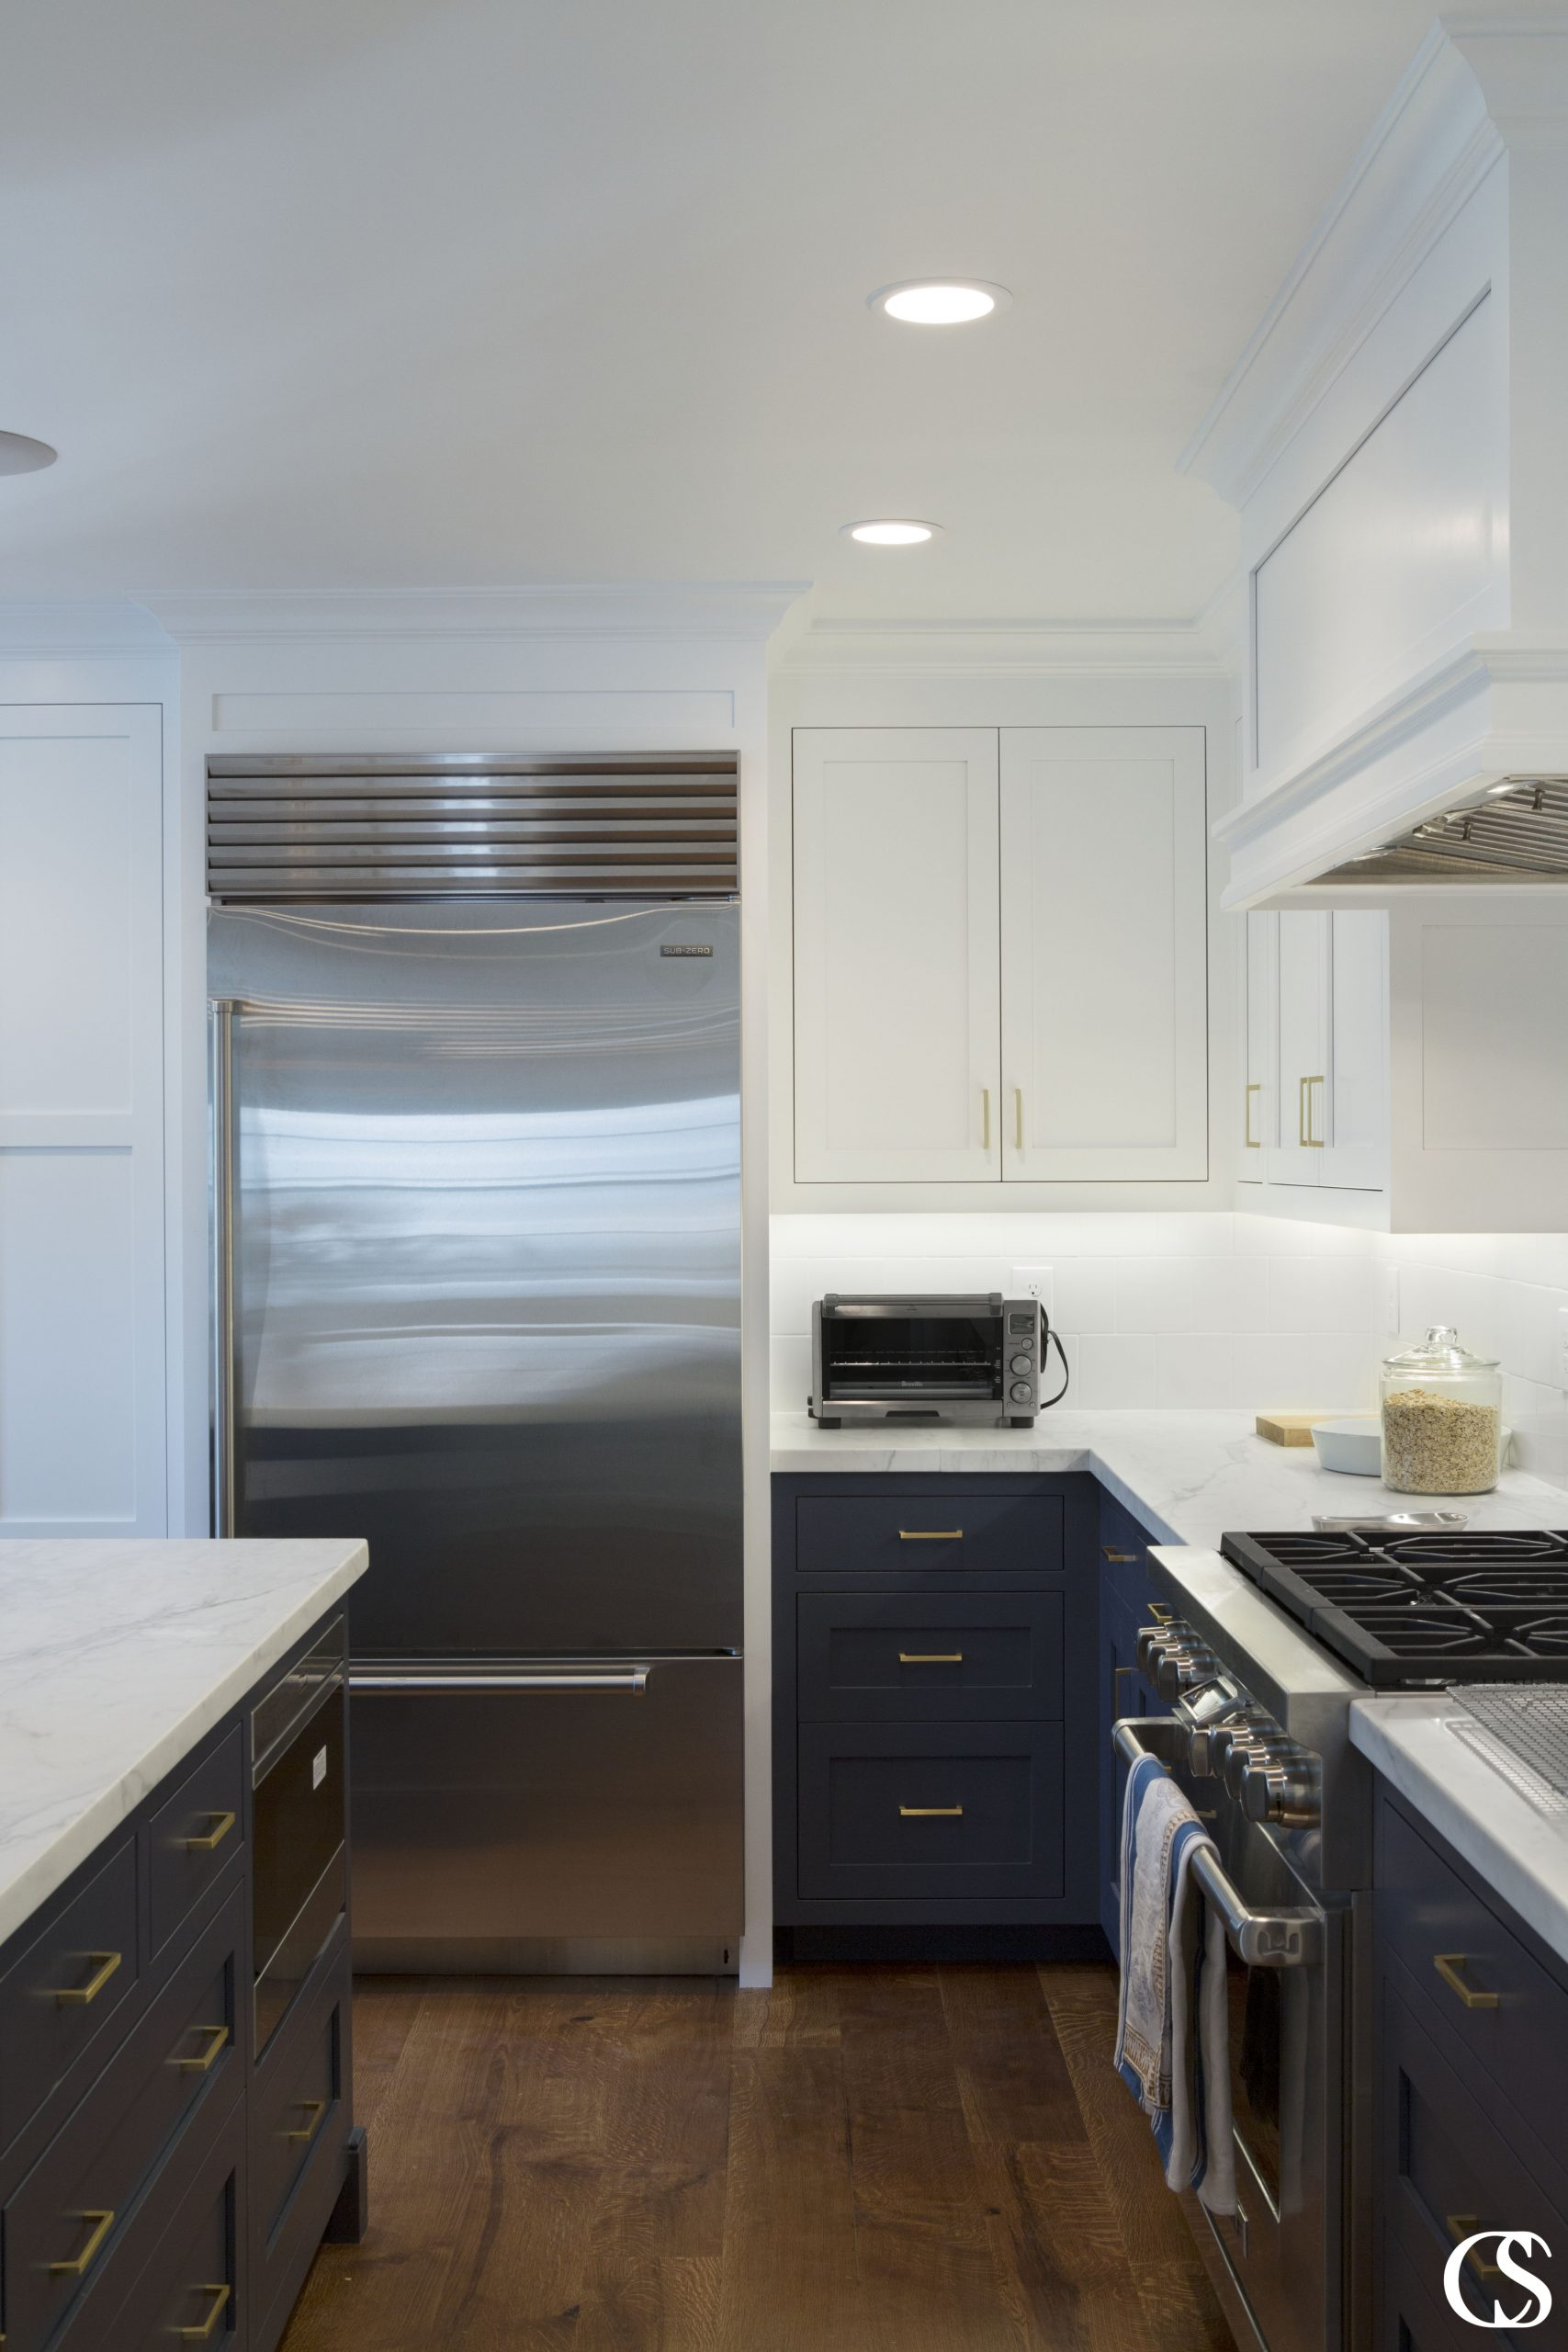 Nothing says unique custom kitchen cabinets like a beautiful deep shade of navy!